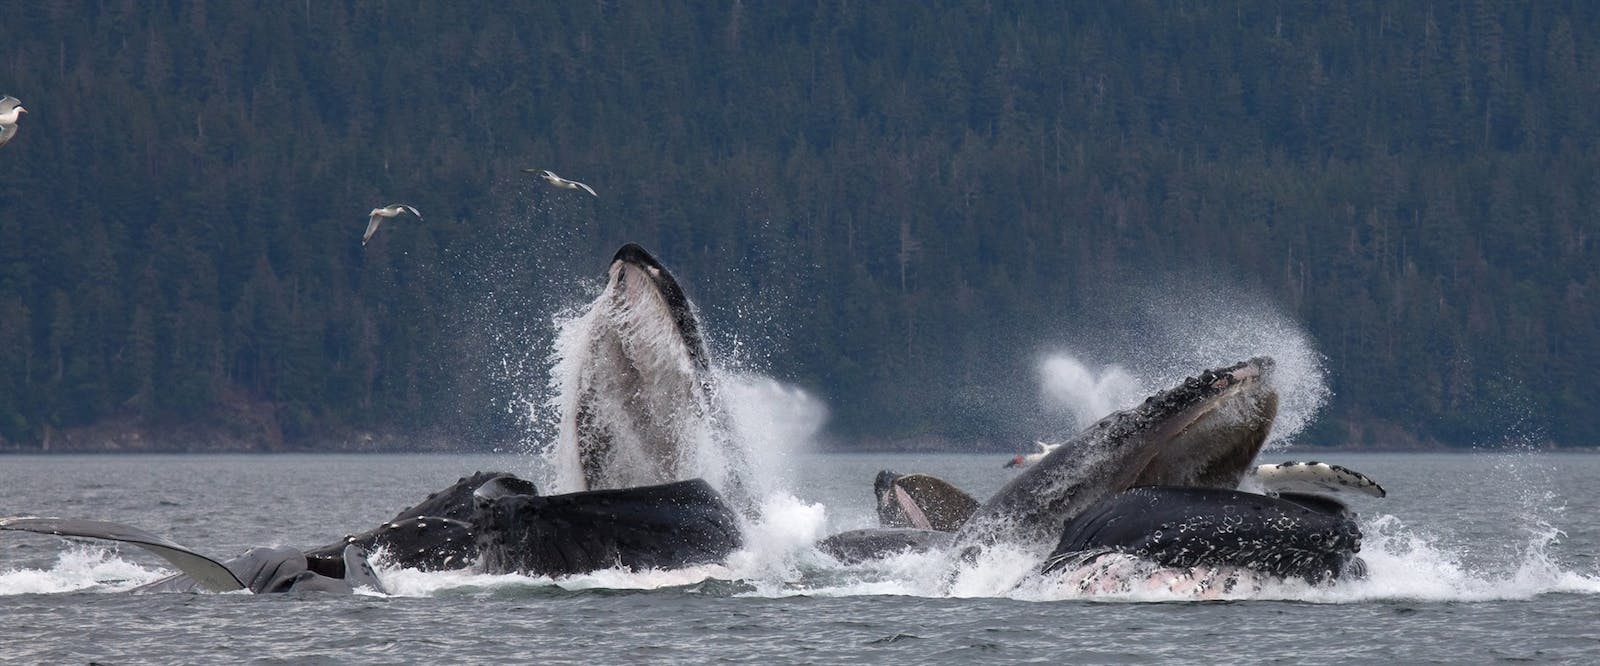 humpbacks whales feeding off juneau